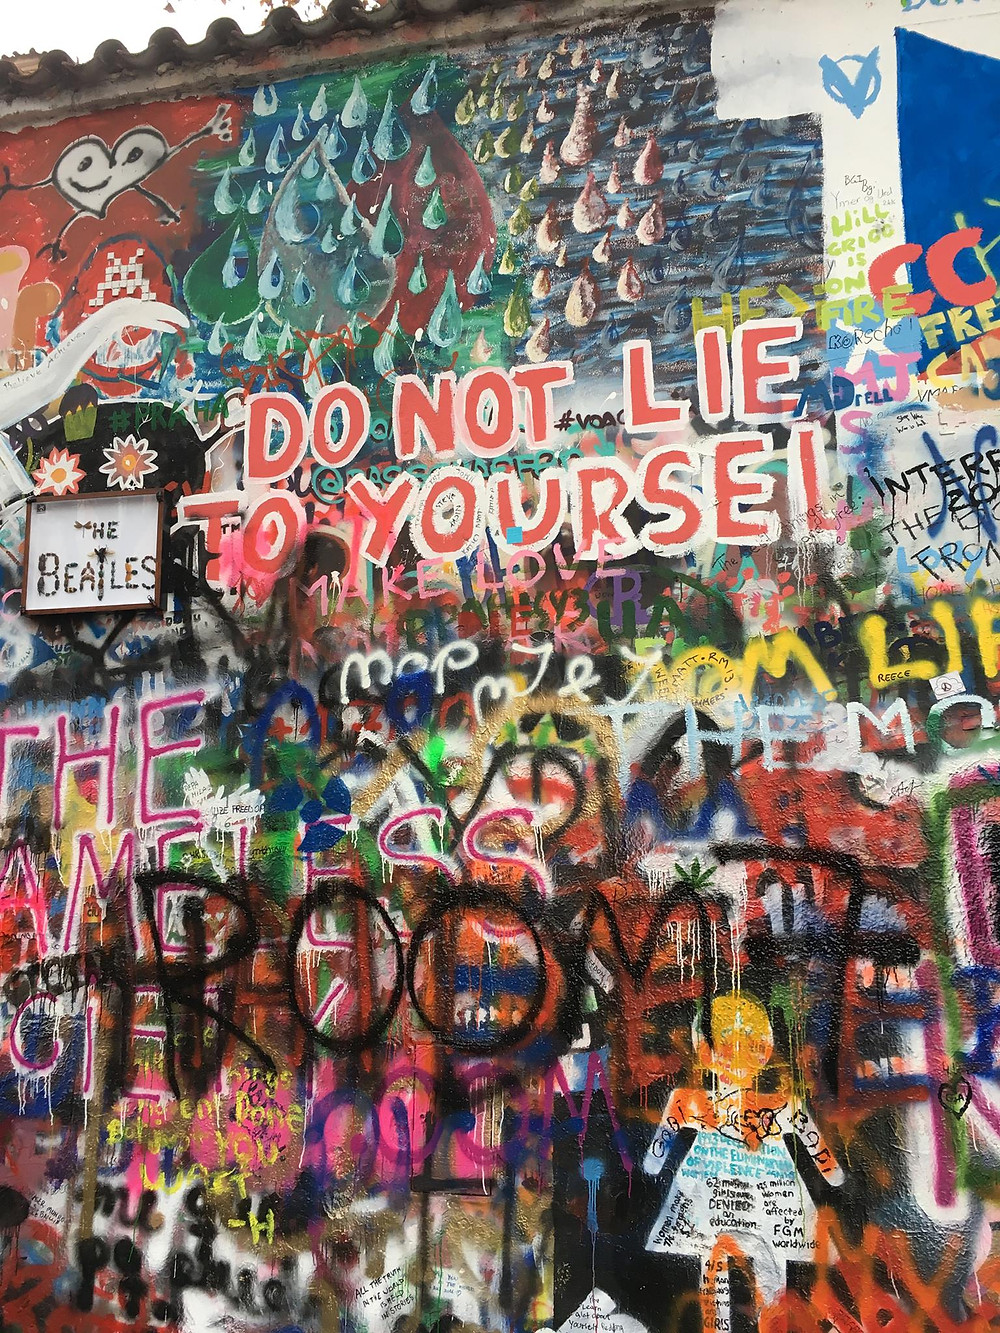 John Lennon Wall, awash with life messages